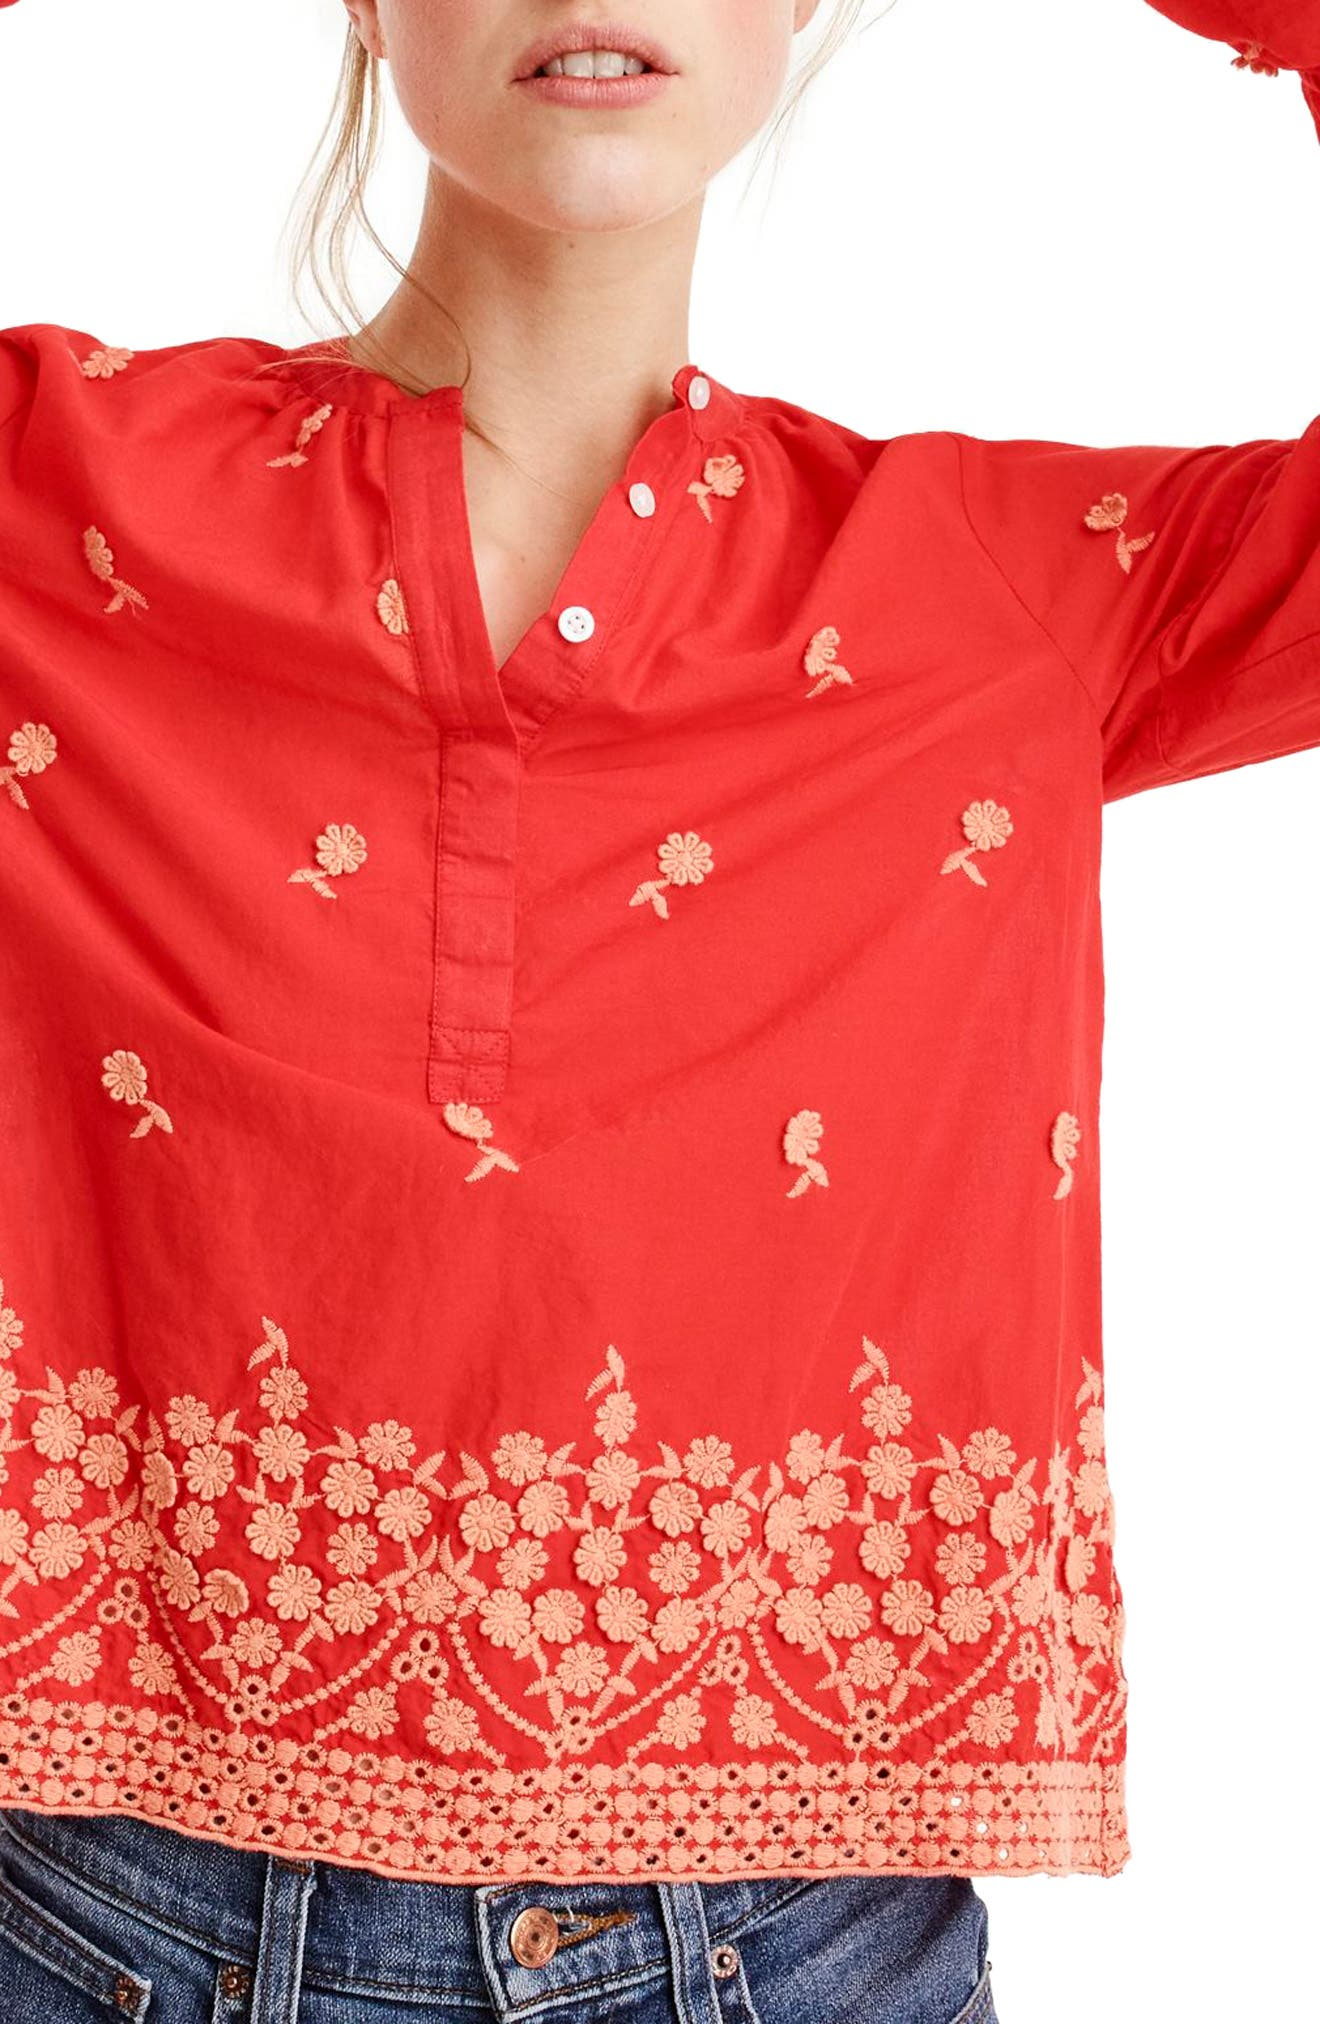 J.Crew Floral Embroidered Popover Blouse (Regular & Petite)